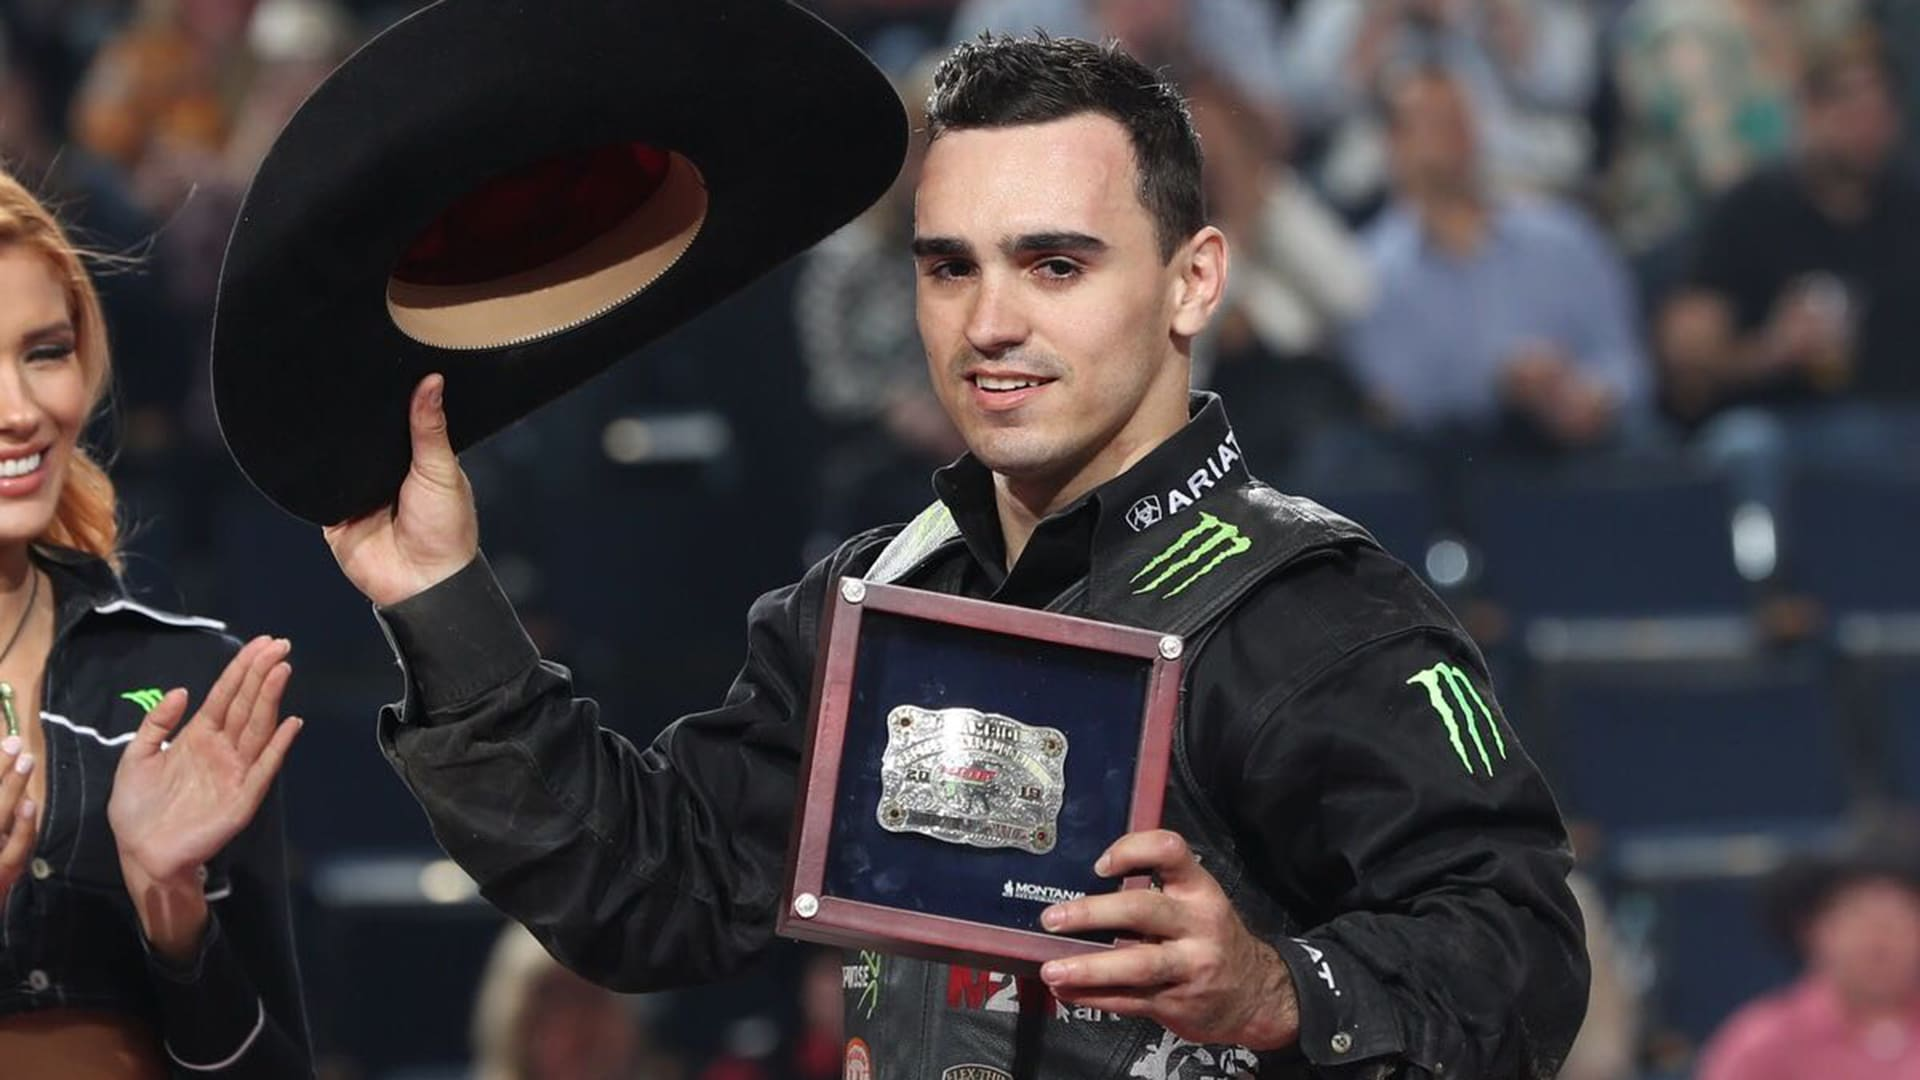 Jose Vitor Leme wins U.S. Border Patrol Invitational